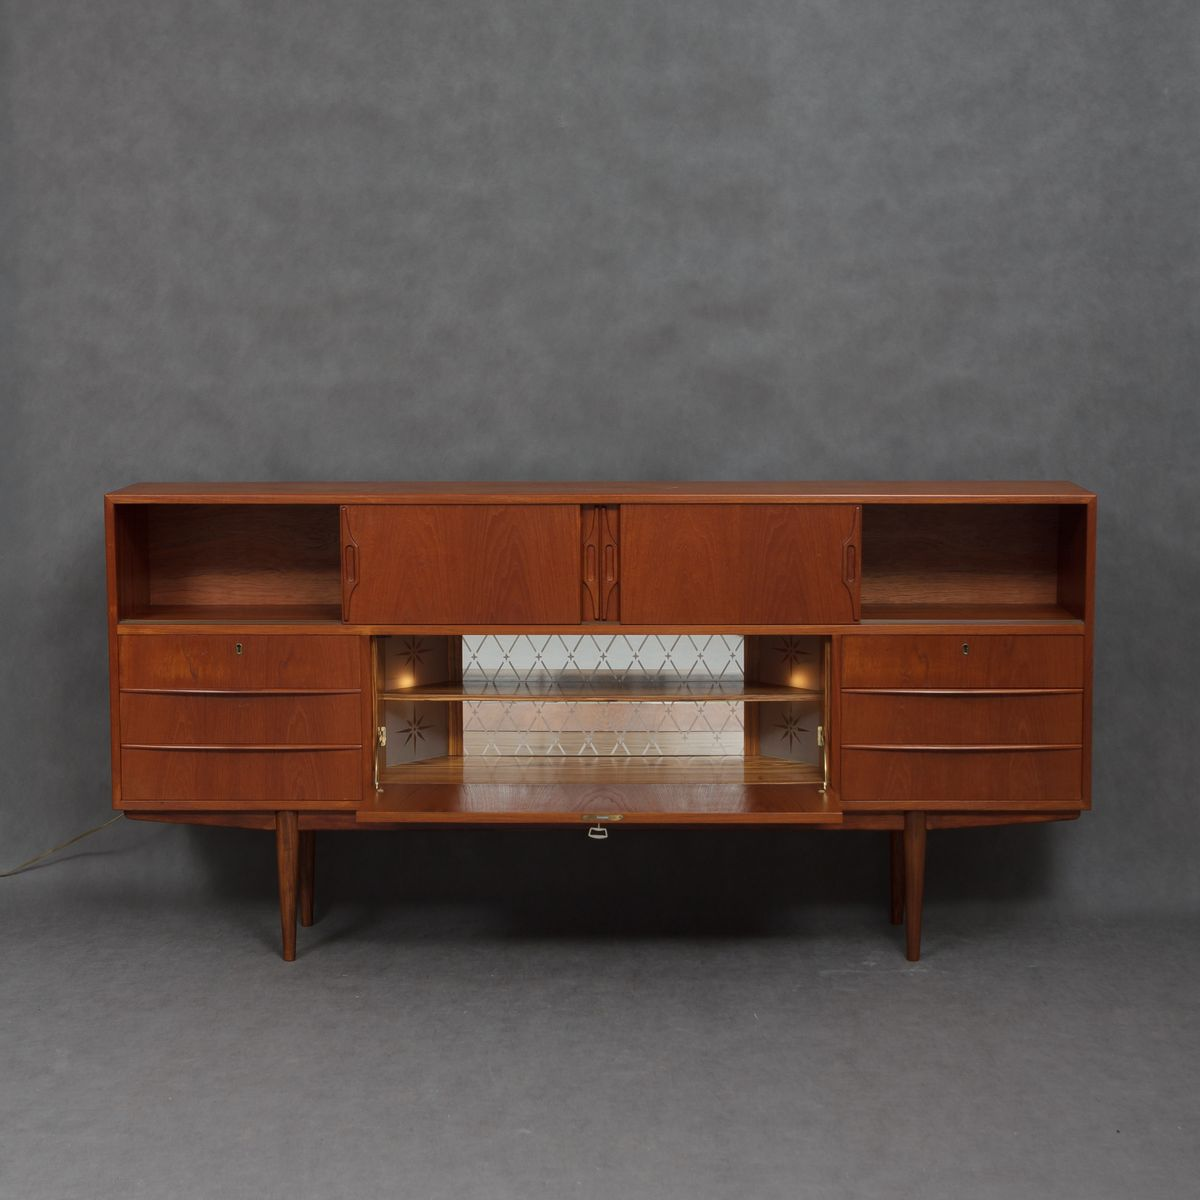 d nisches mid century sideboard mit beleuchtetem bar. Black Bedroom Furniture Sets. Home Design Ideas